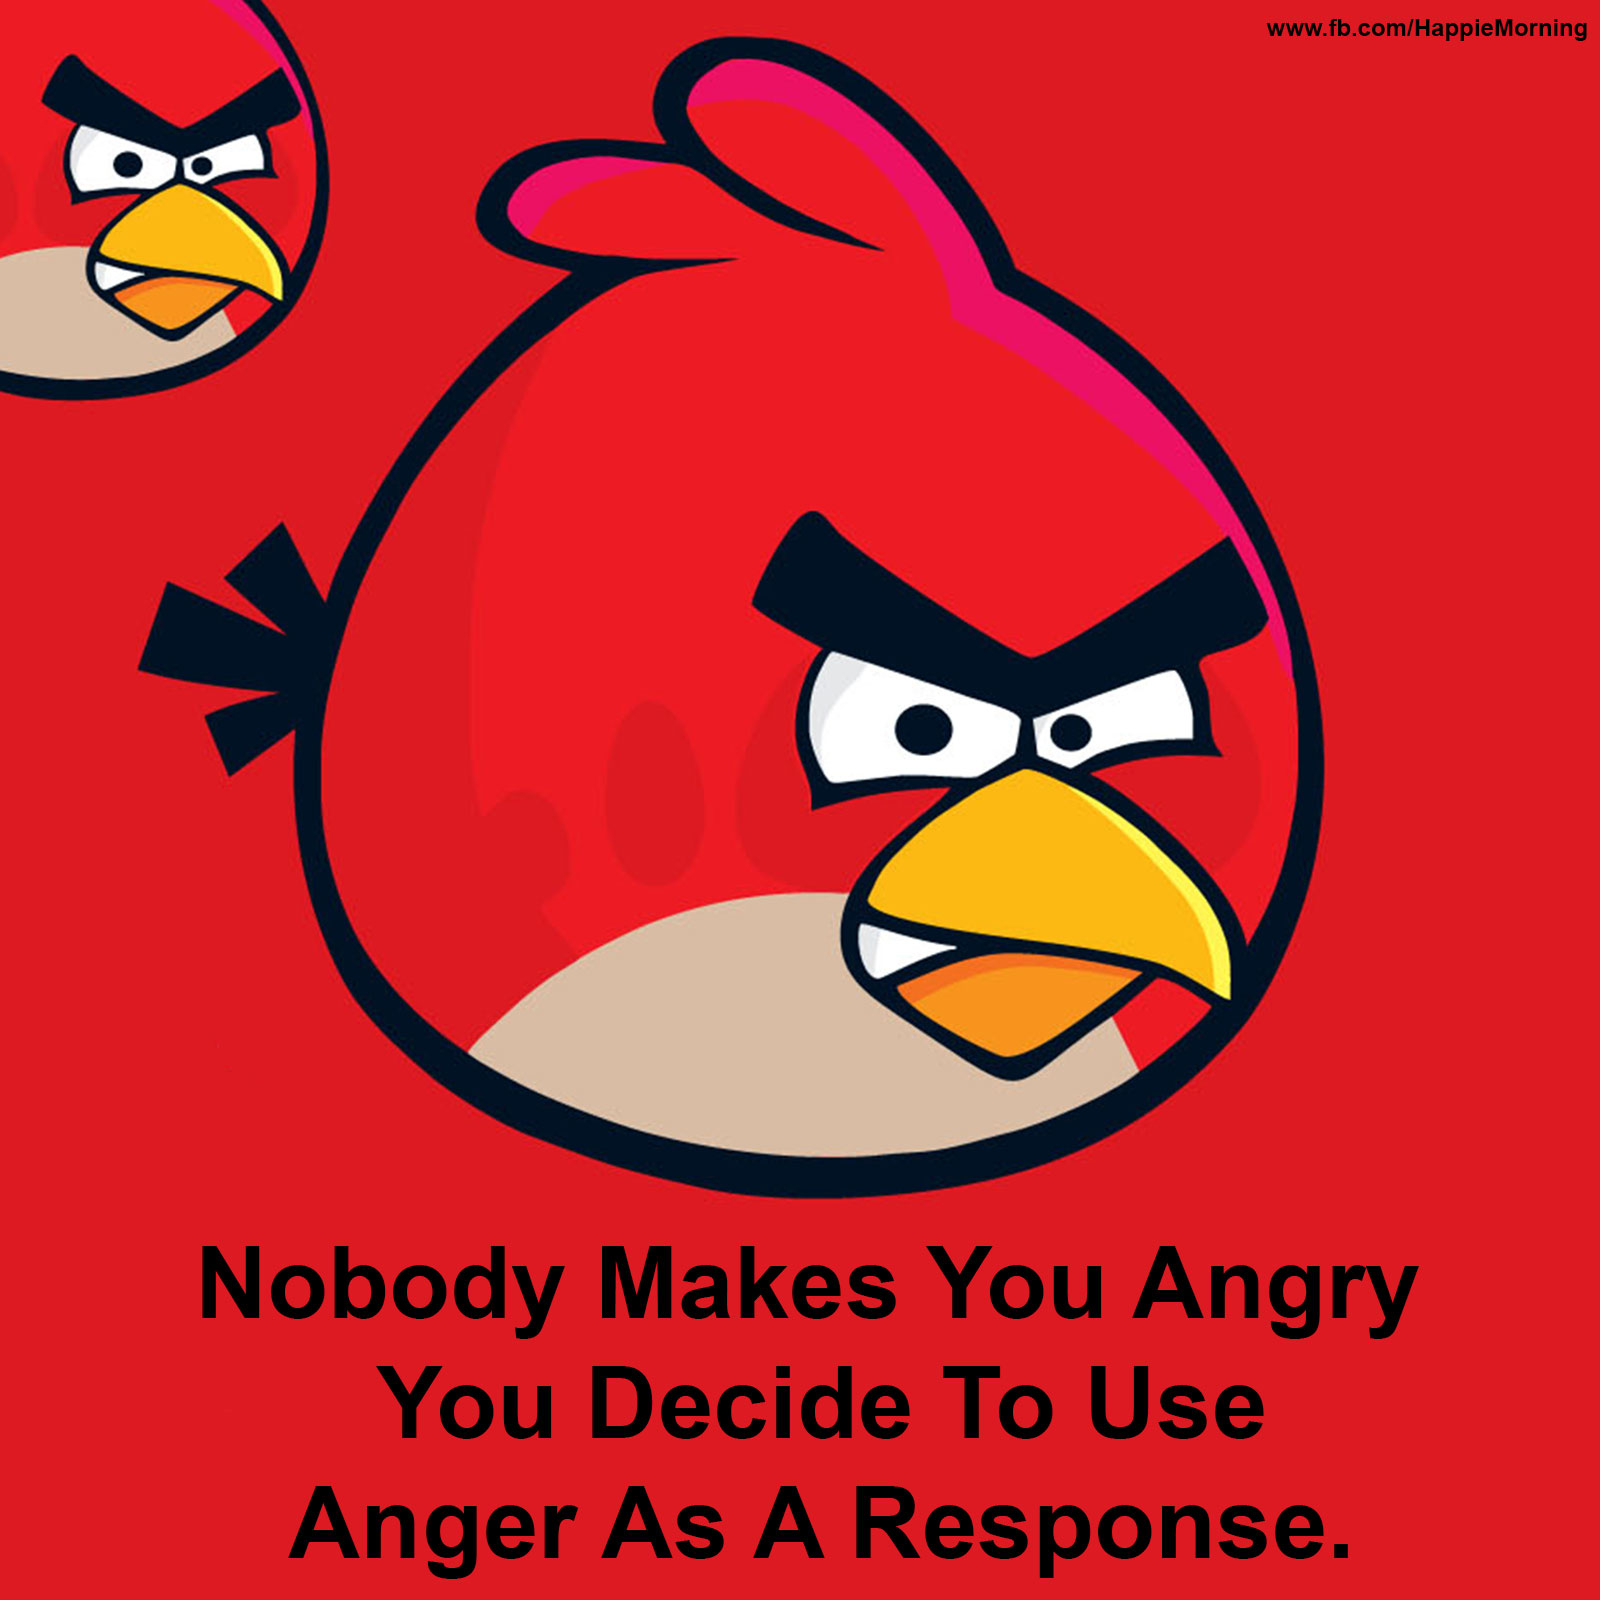 nobody makes you angry you decide to use anger as a response nobody makes you angry you decide to use anger as a response